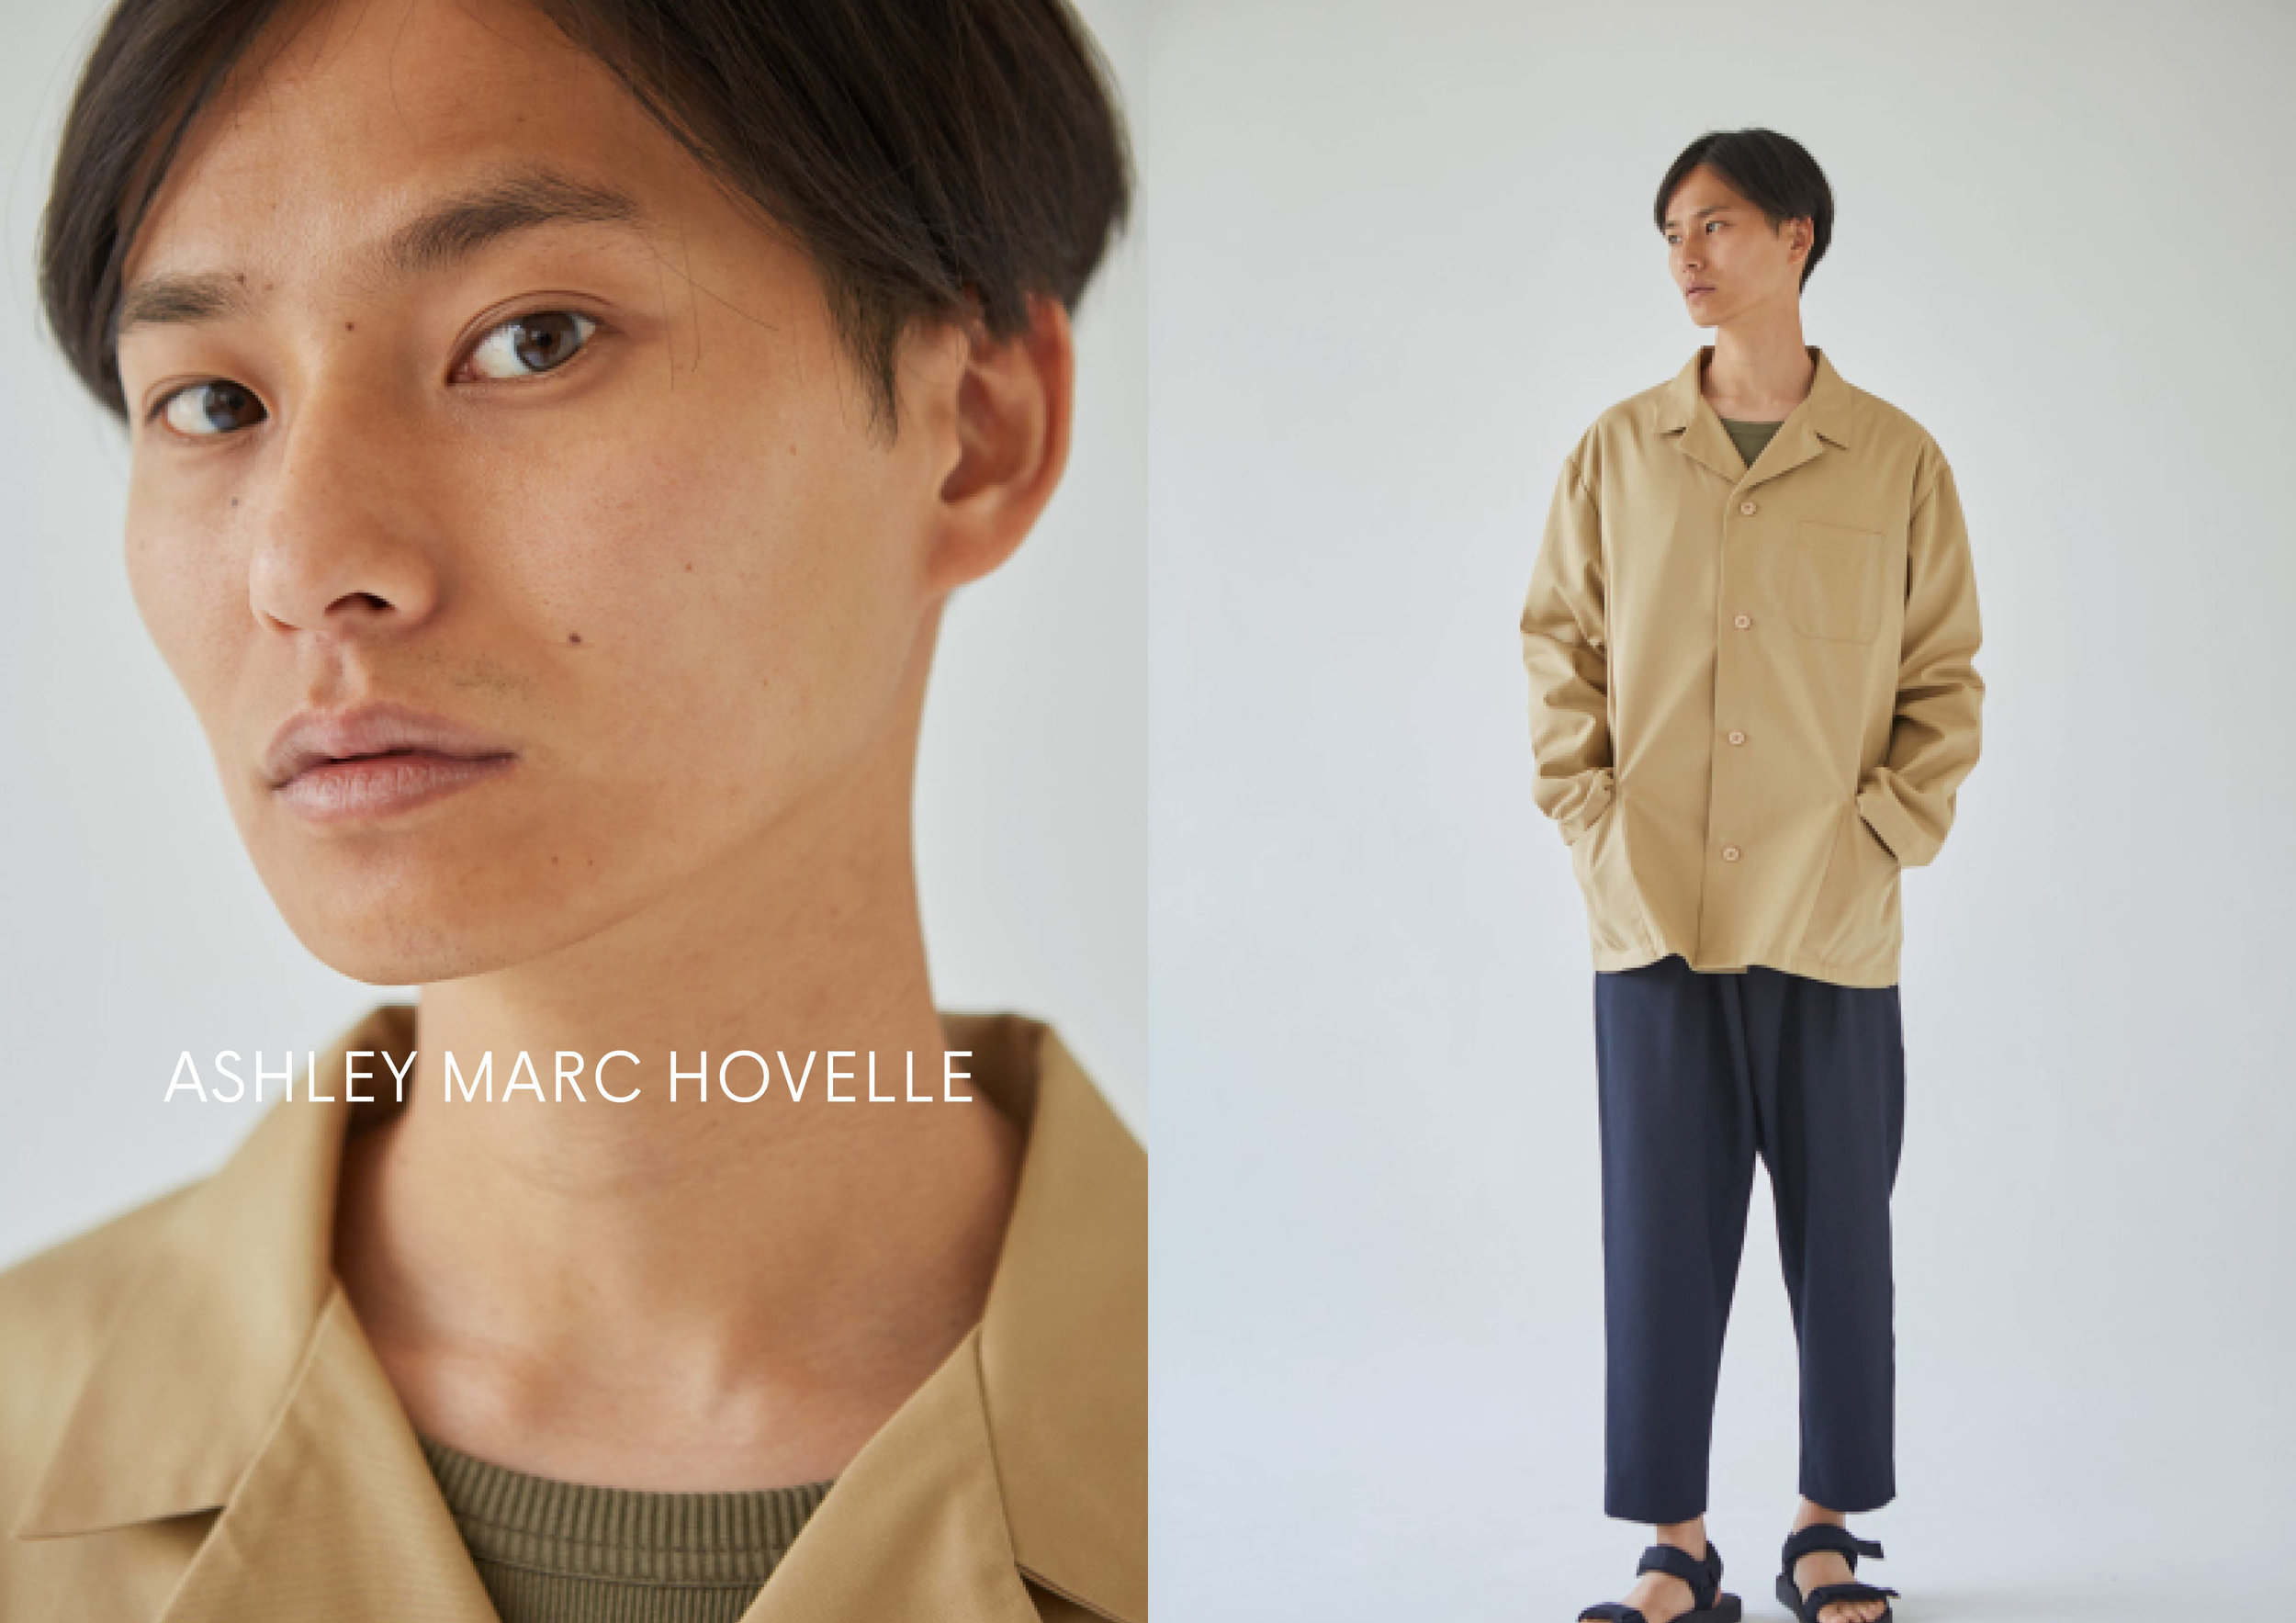 Ashley Marc Hovelle SS19 Lookbook final sml8.jpg